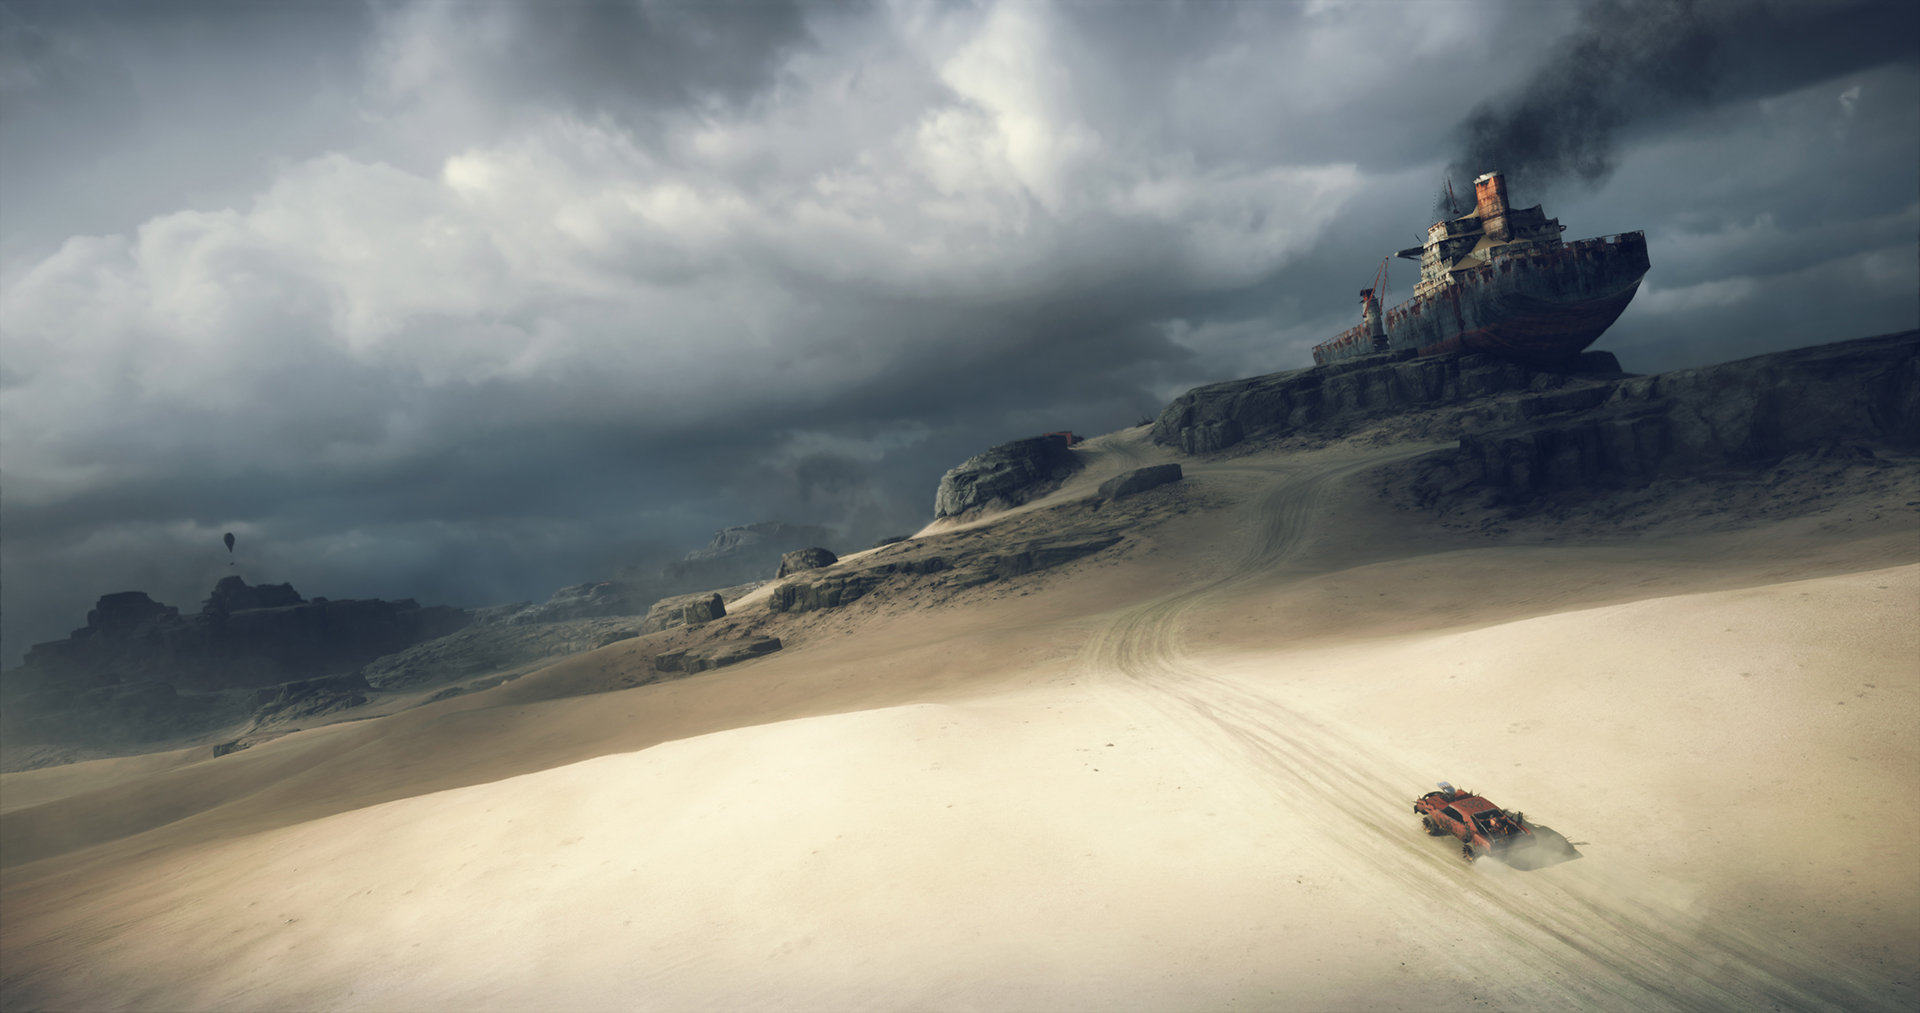 mad-max-screen-07-ps4-us-23apr15?$MediaC